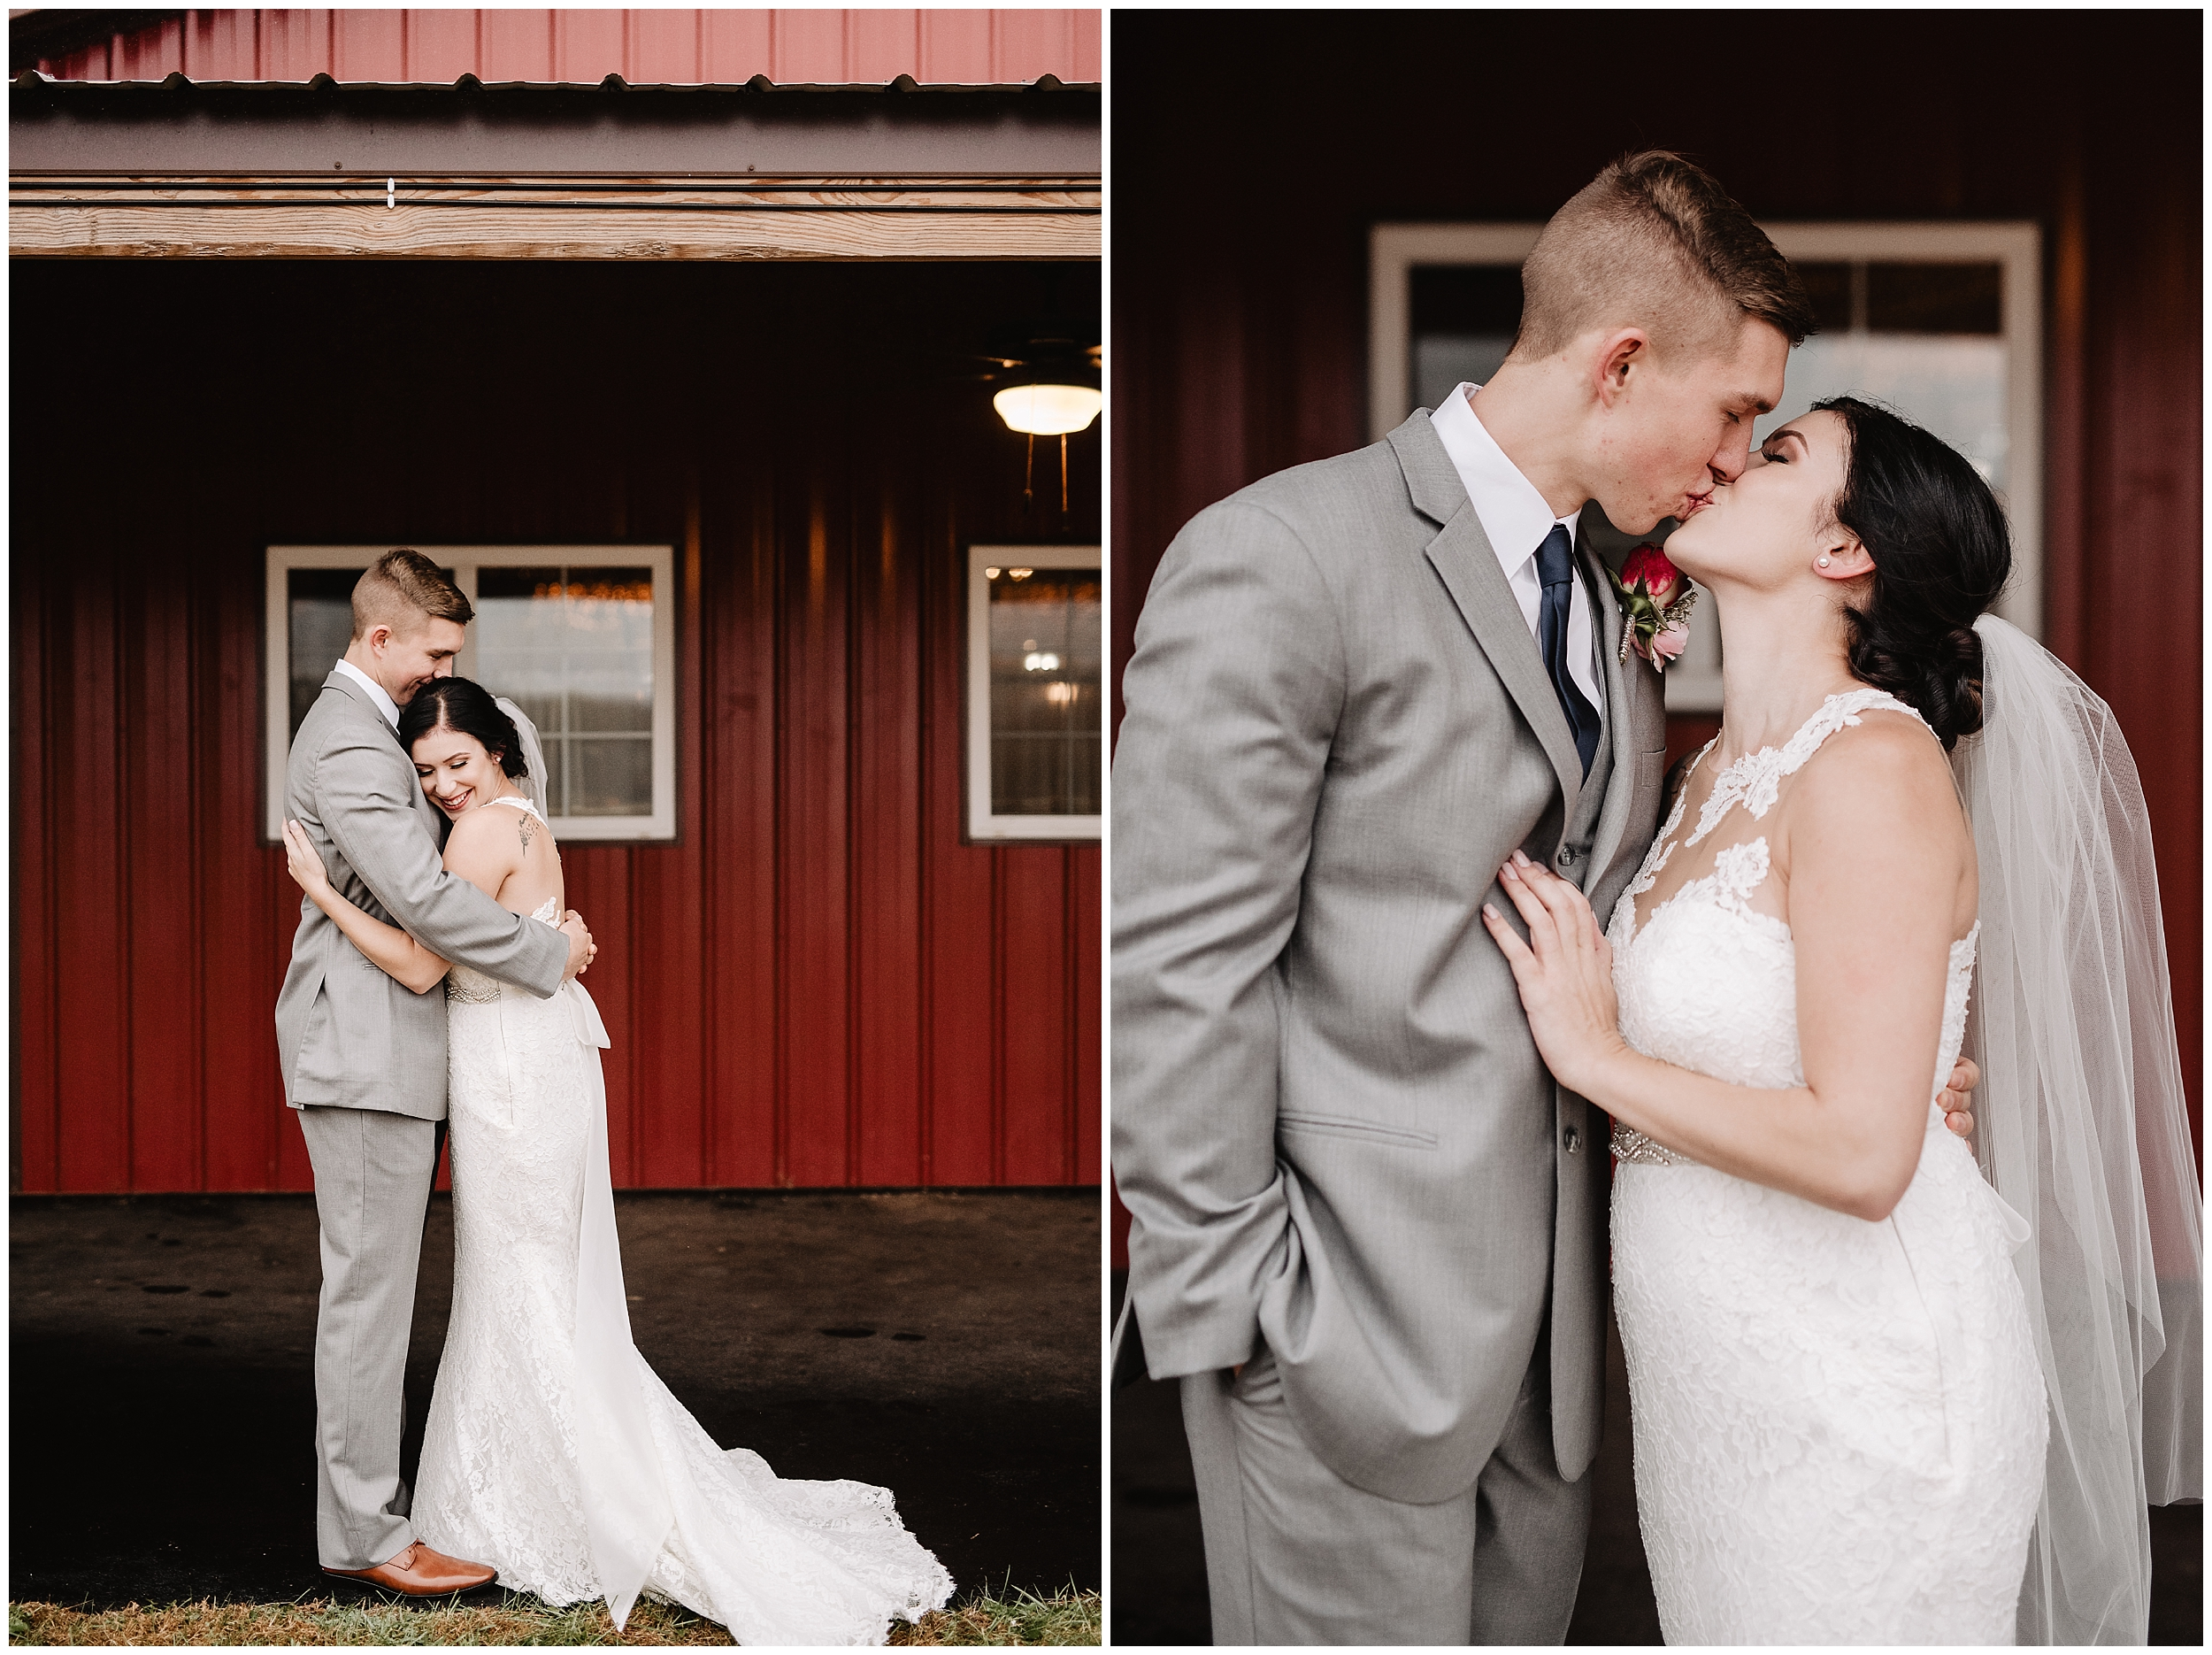 oklahoma wedding photography first look bride groom wedding day sweet viola kansas rustic pines red barn